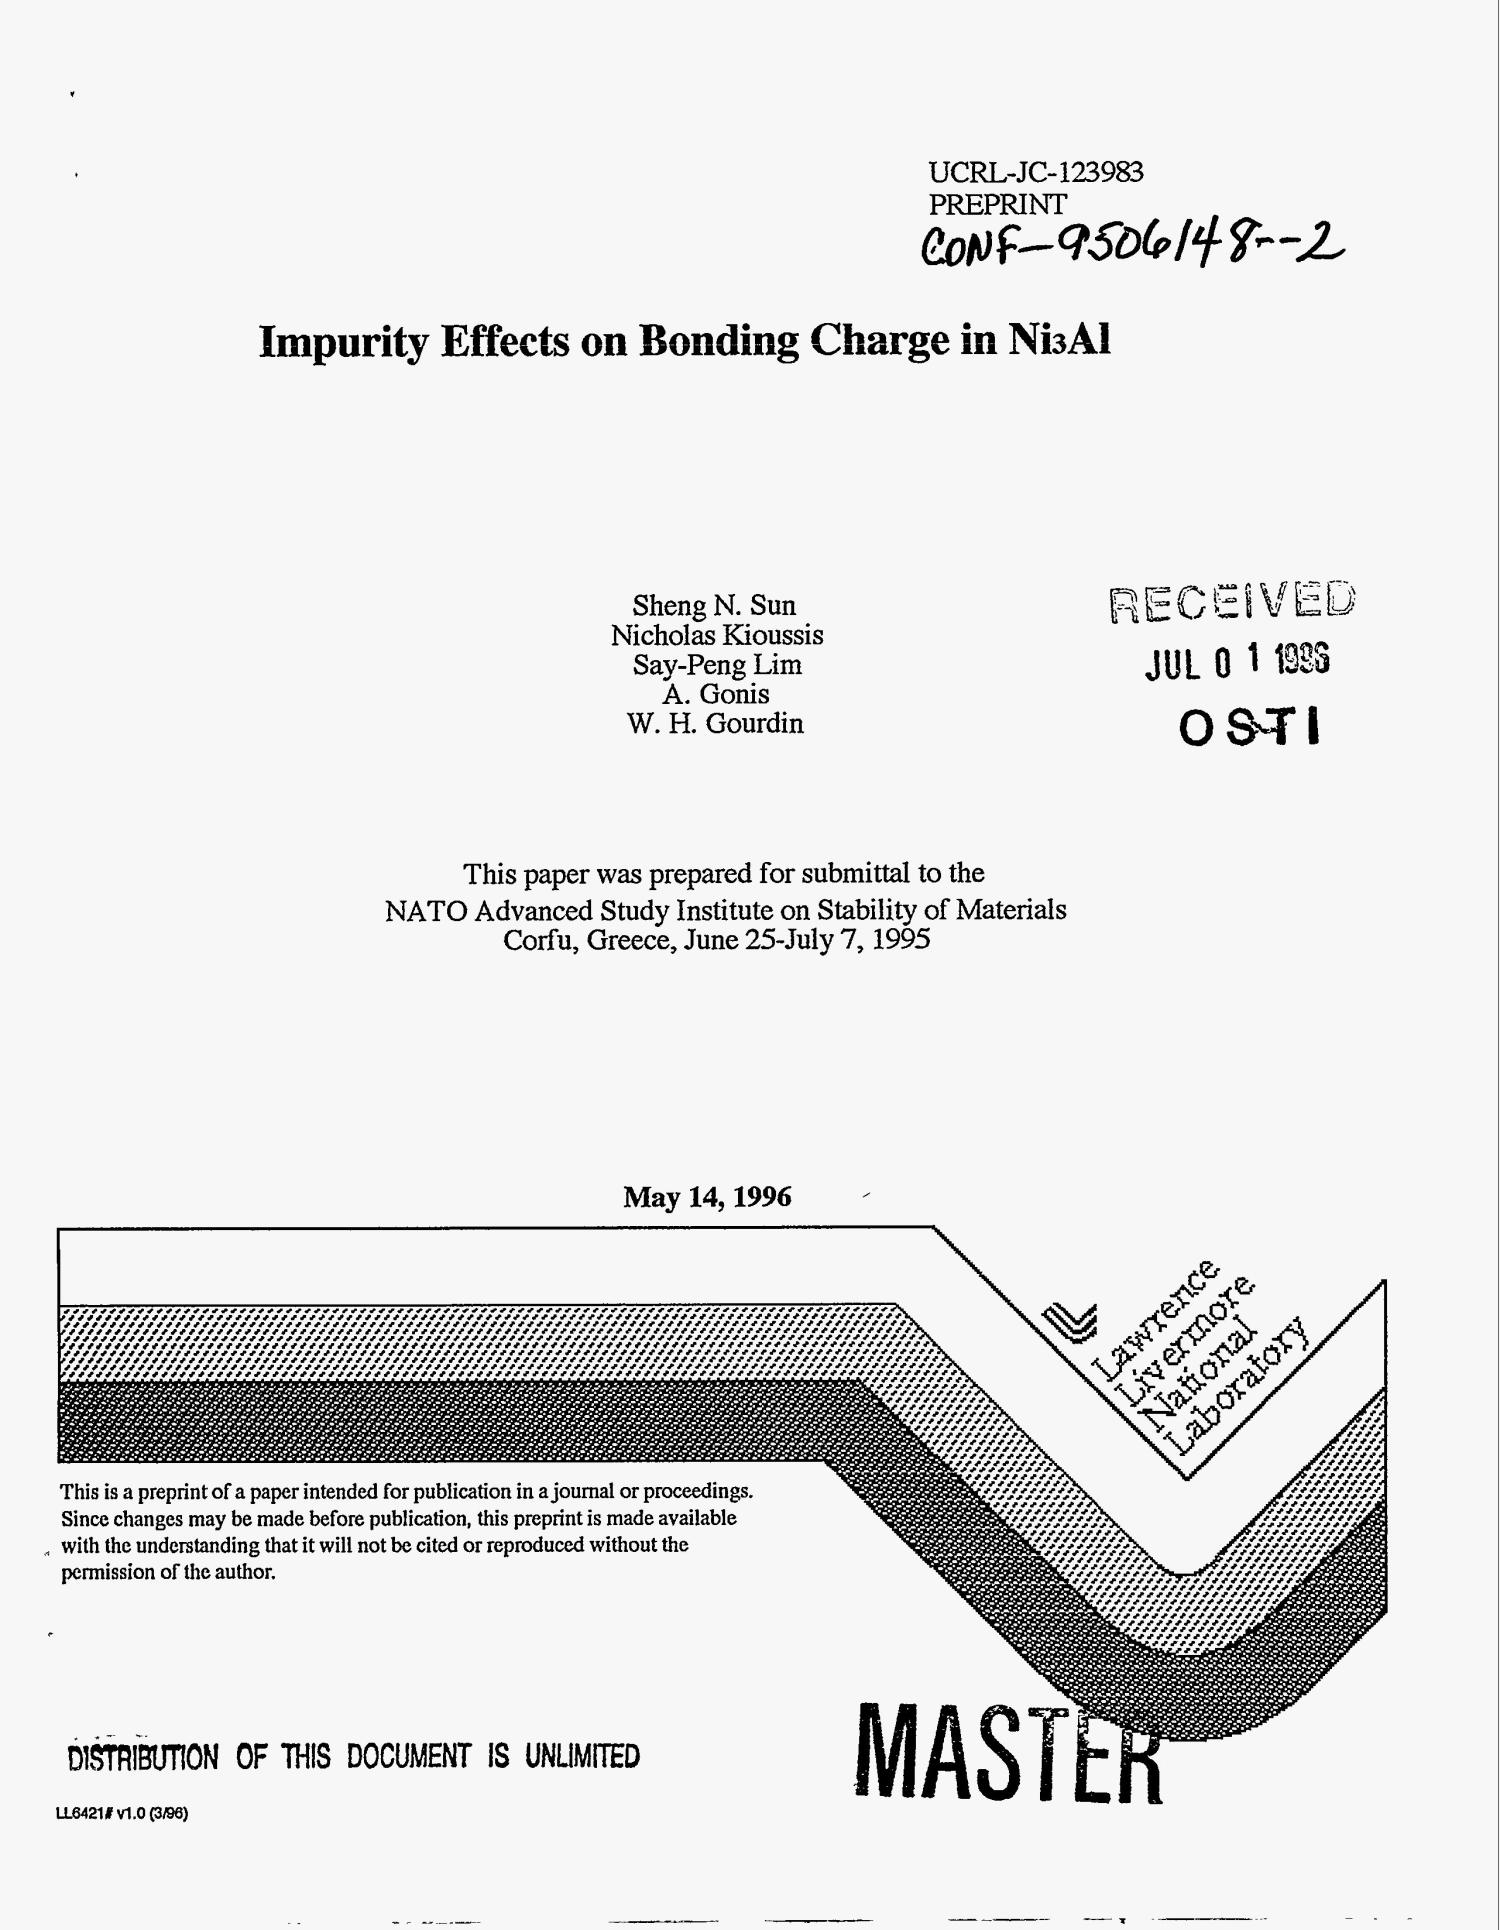 Impurity effects on bonding charge in Ni{sub 3}Al                                                                                                      [Sequence #]: 1 of 12